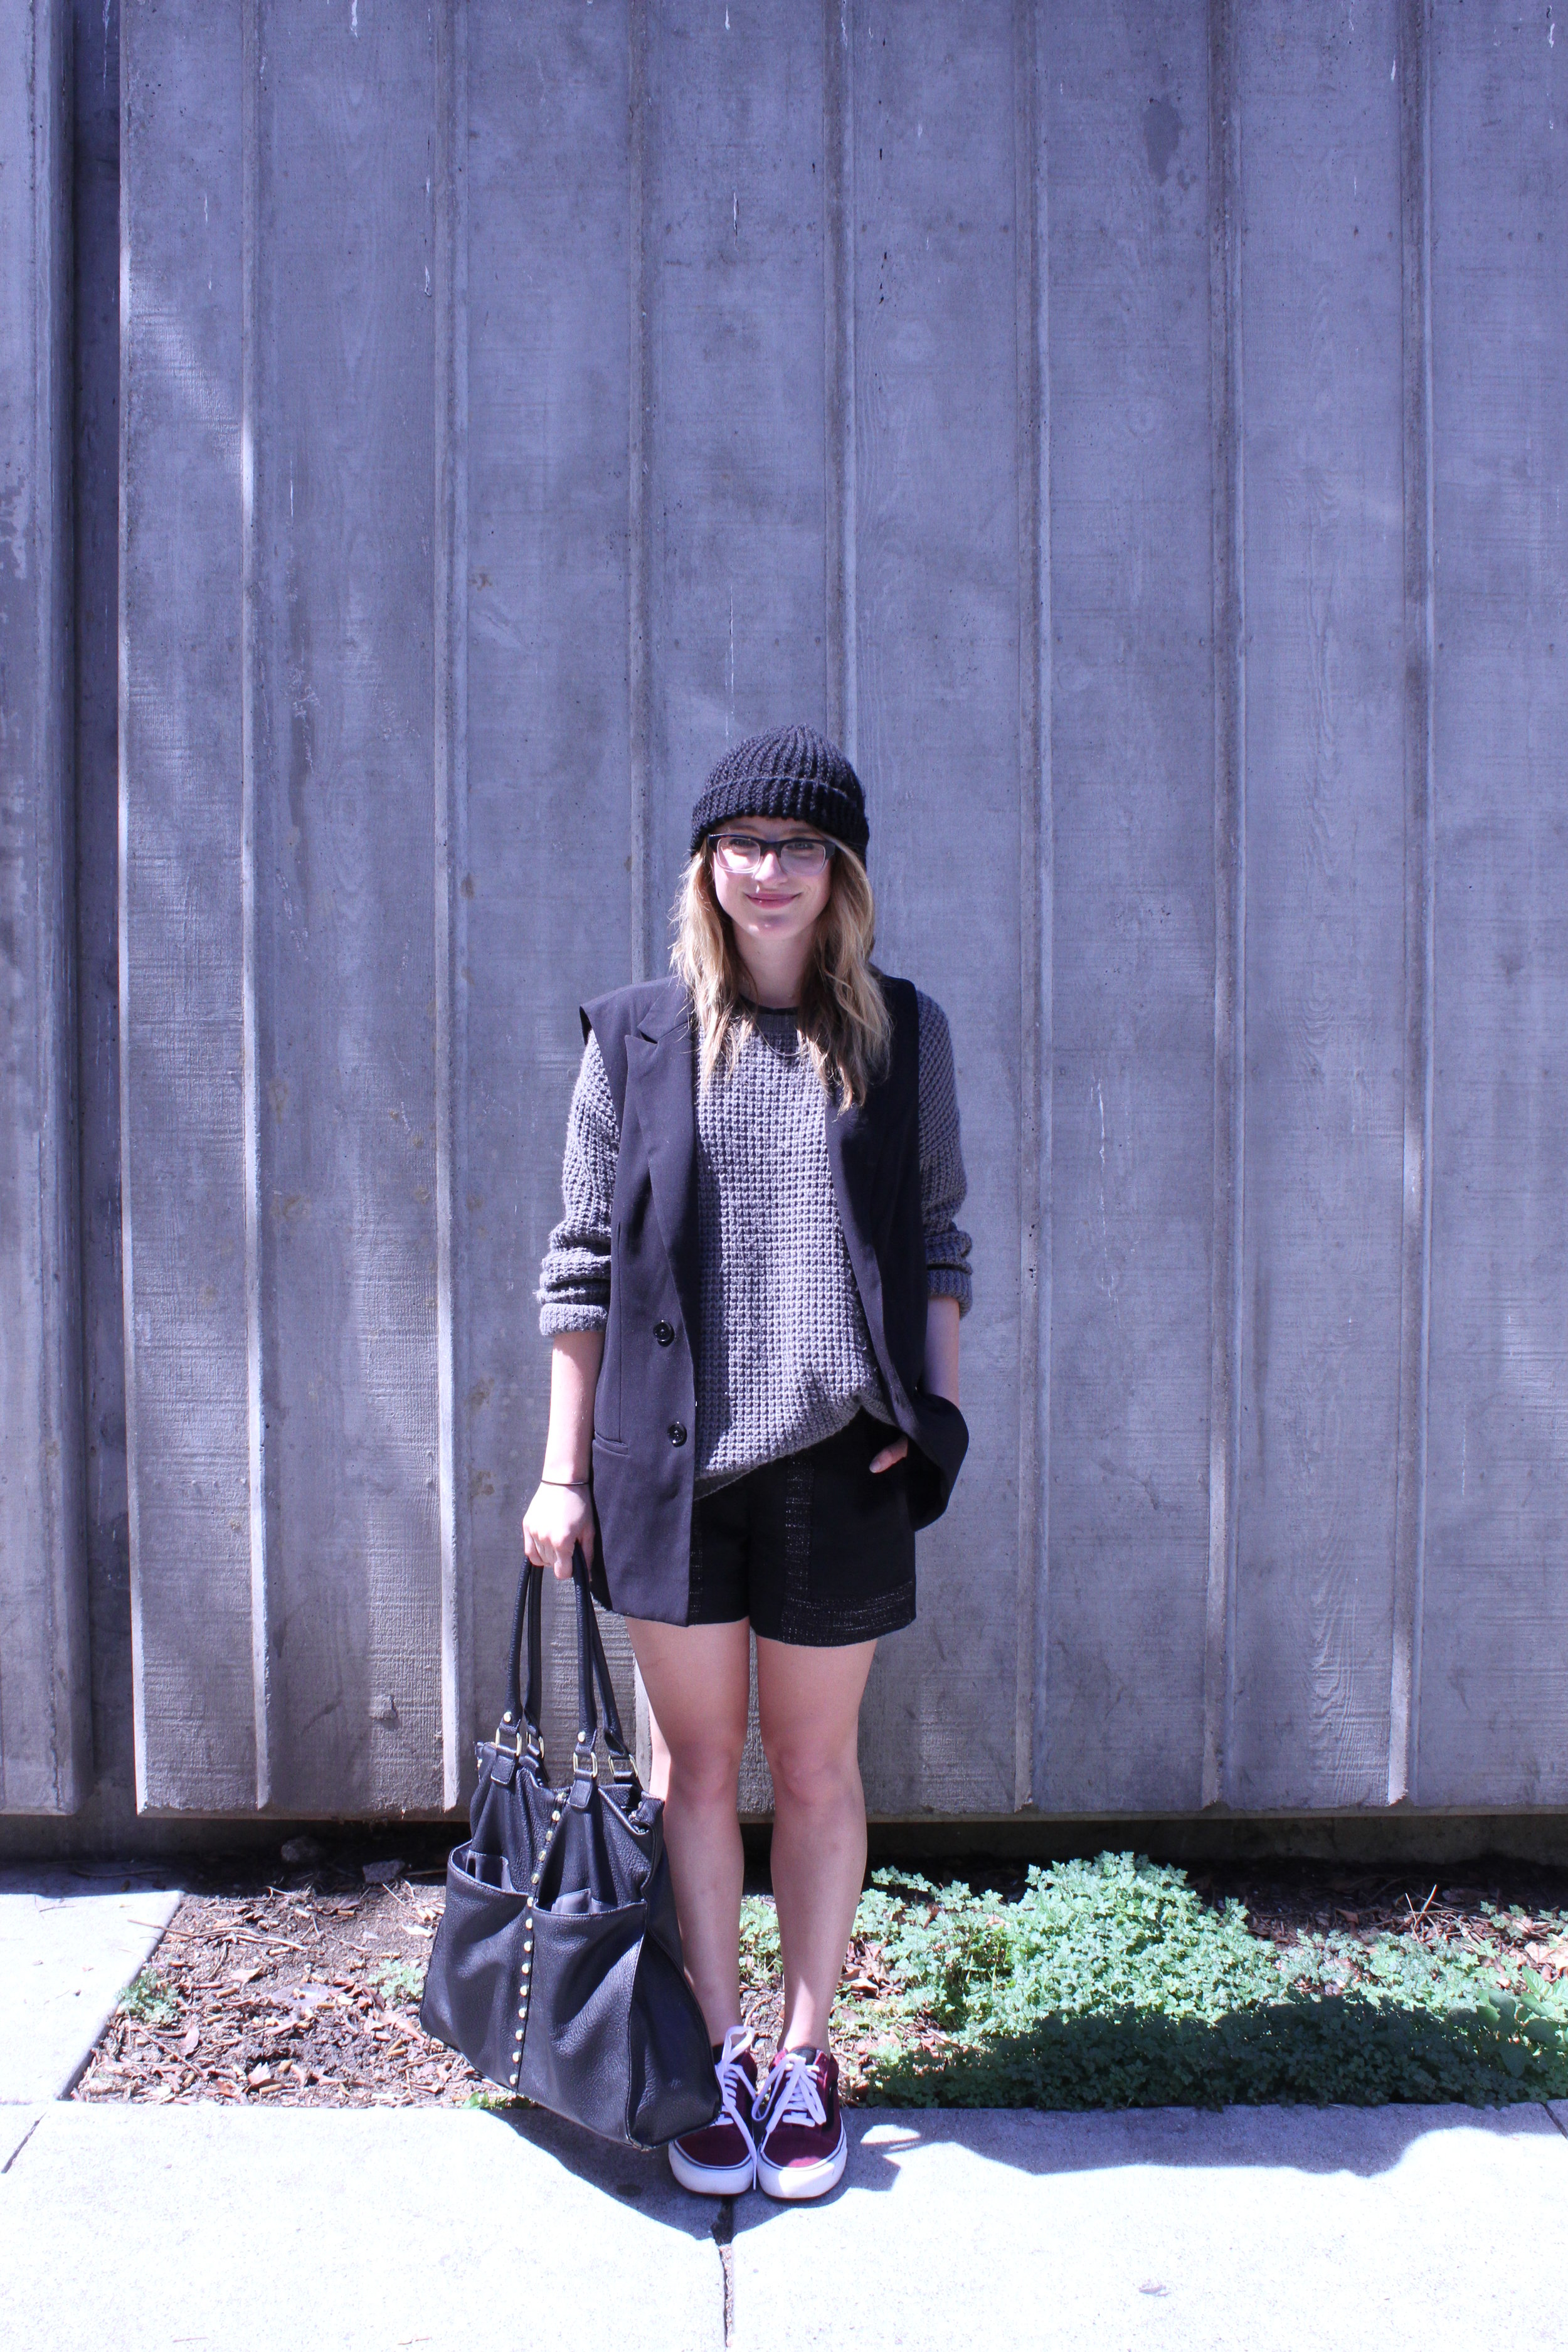 Vest: Target | Sweater: F21 | Shorts: BCBGeneration | Shoes: Vans via Crossroads Trading